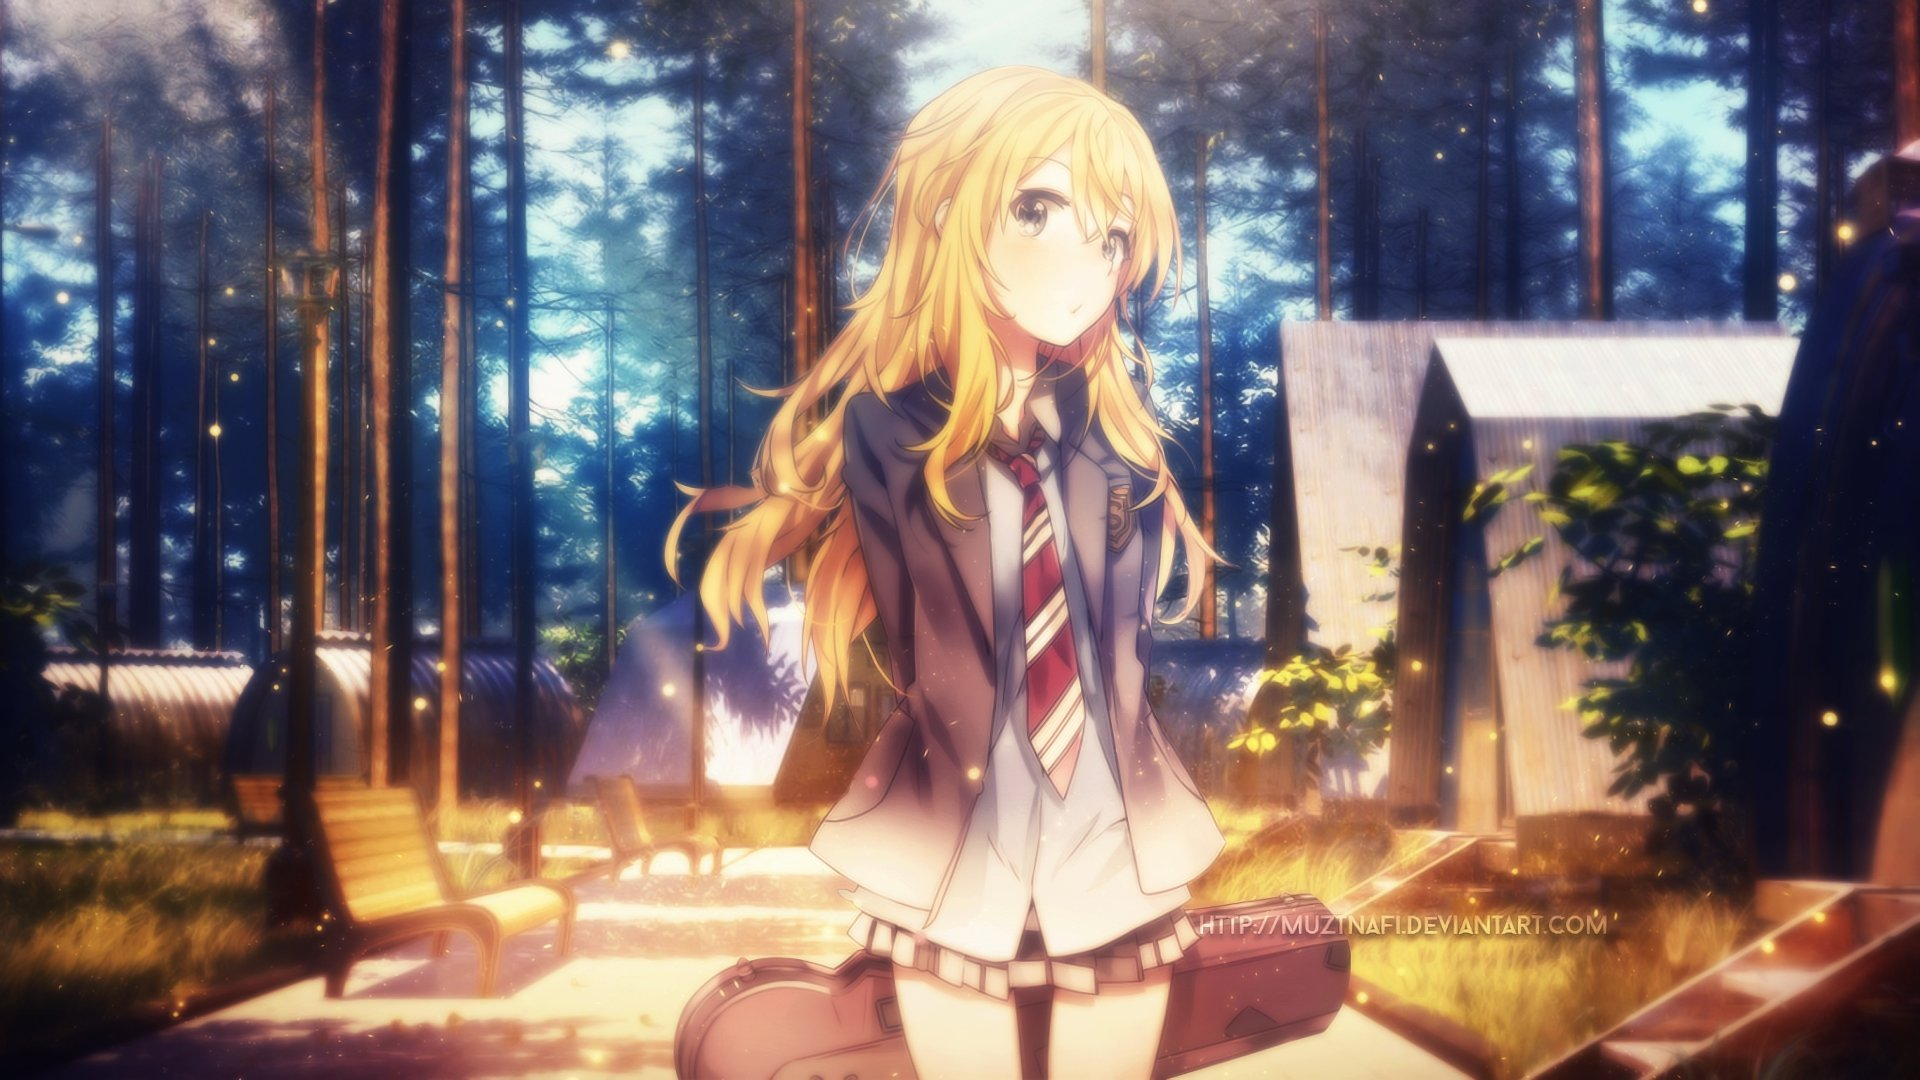 Awesome Kaori Miyazono Free Wallpaper Id 45814 For Hd 1080p Pc